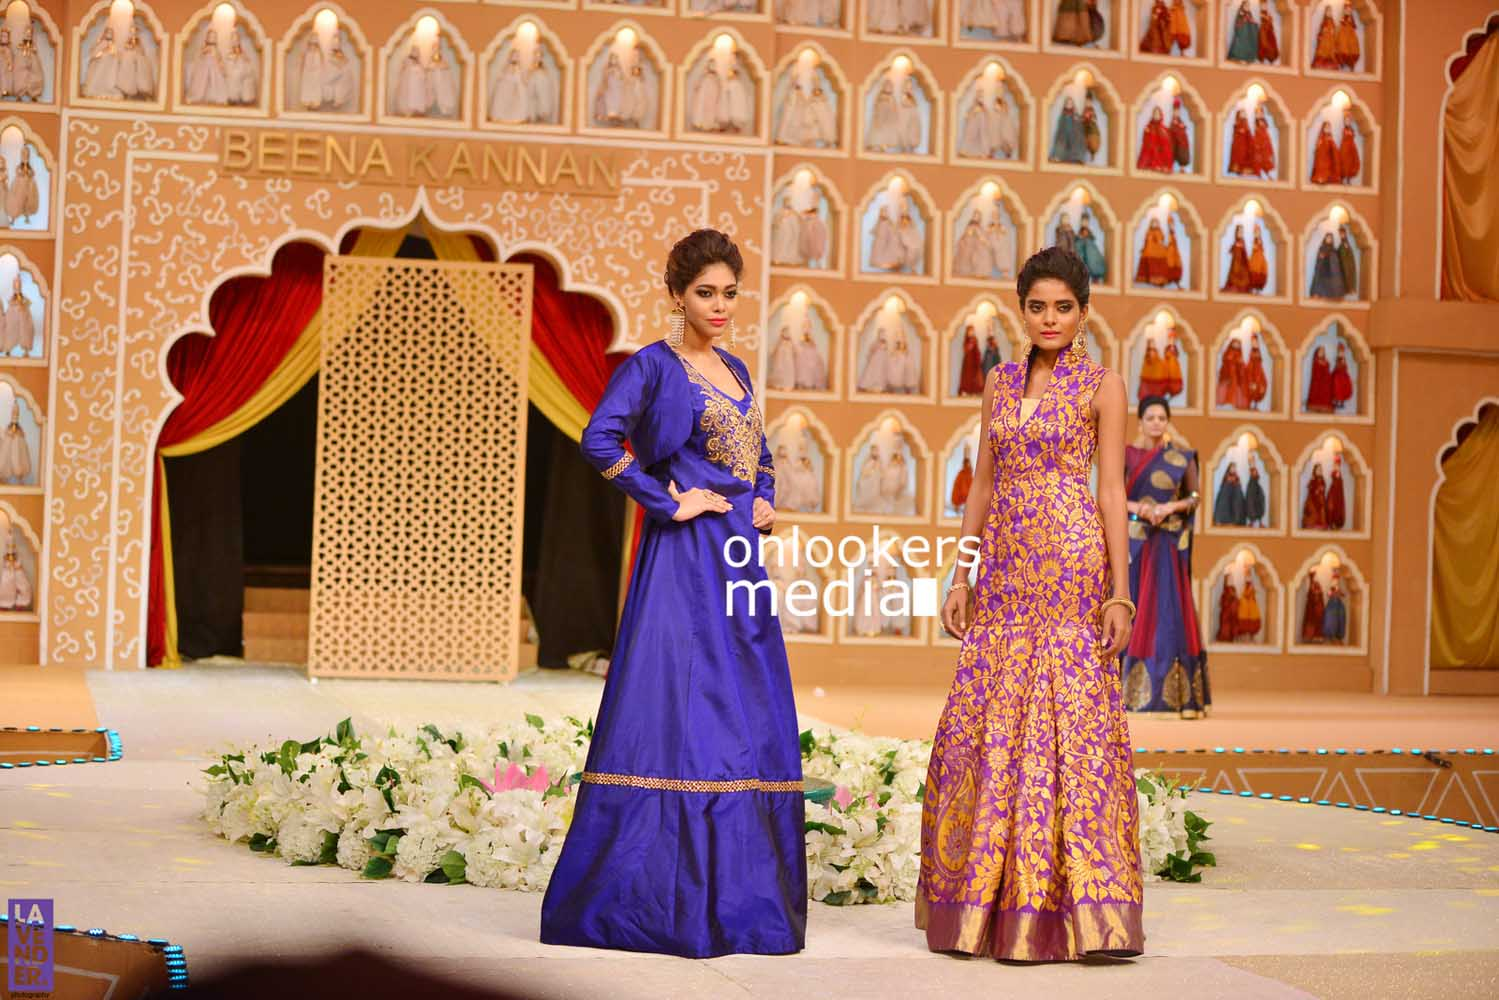 http://onlookersmedia.in/wp-content/uploads/2016/10/Beena-Kannan-Bridal-Show-2016-Stills-Photos-Seematti-131.jpg